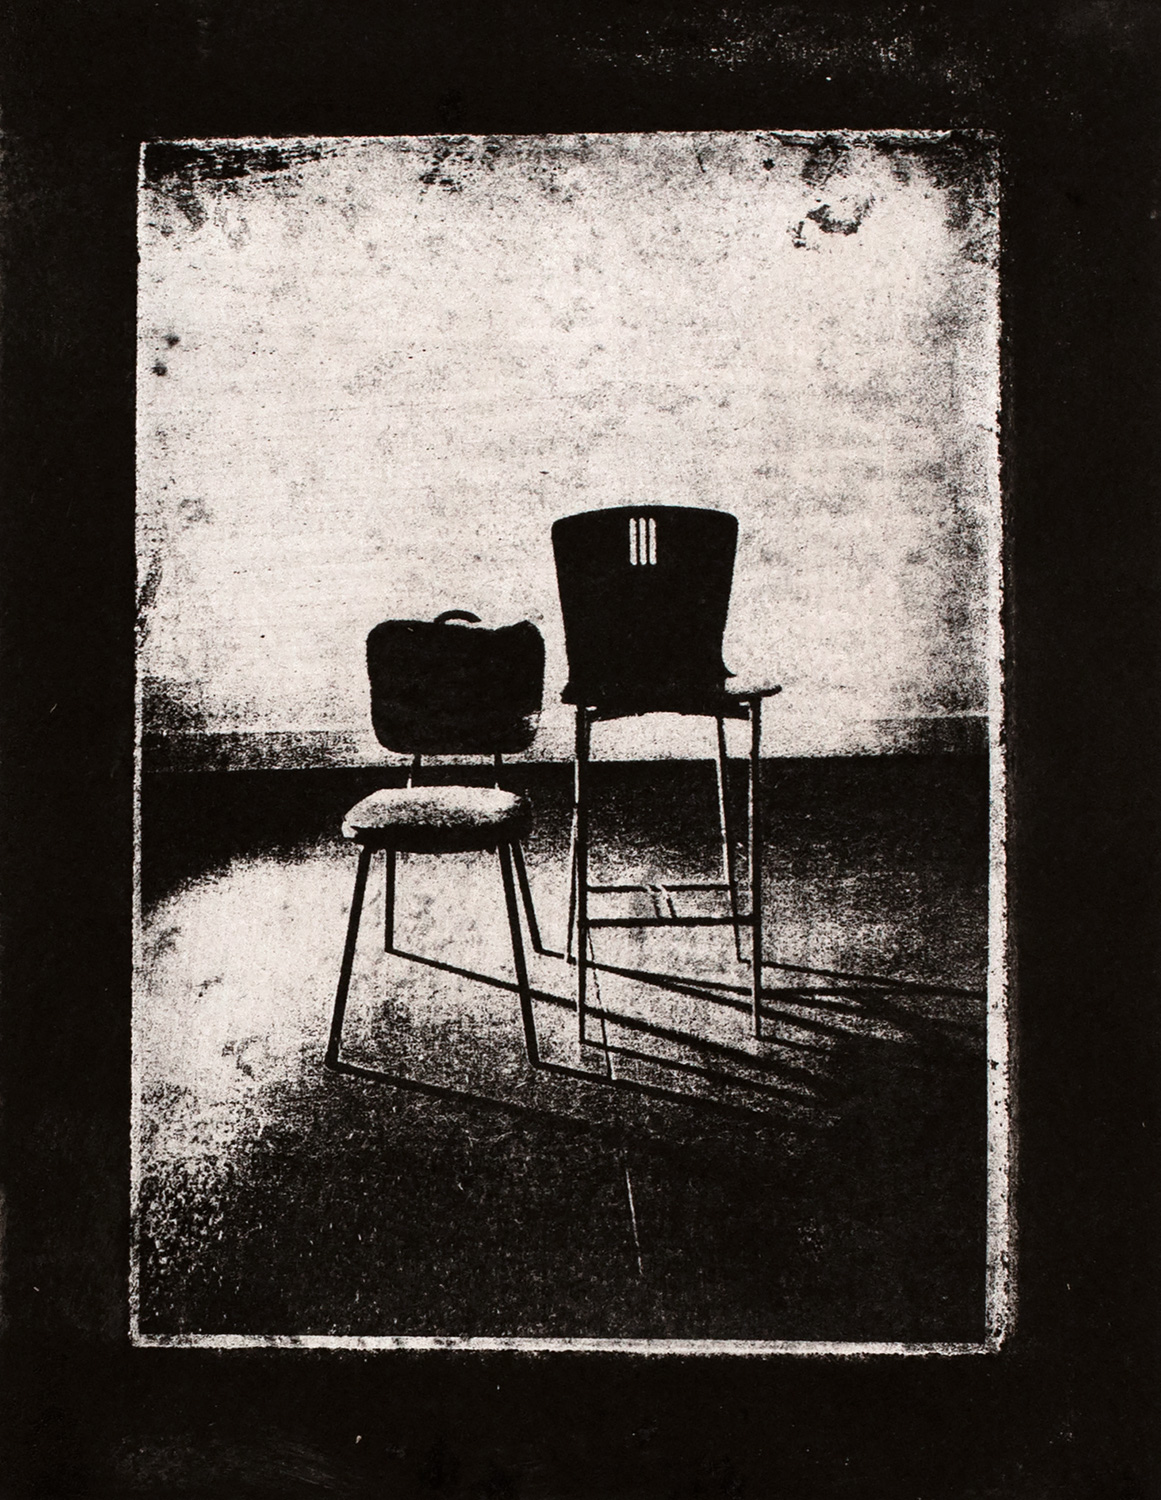 Chairs I , 2016, paper lithograph on Fabriano Artistico 300 gsm, 42 x 29.7 cm